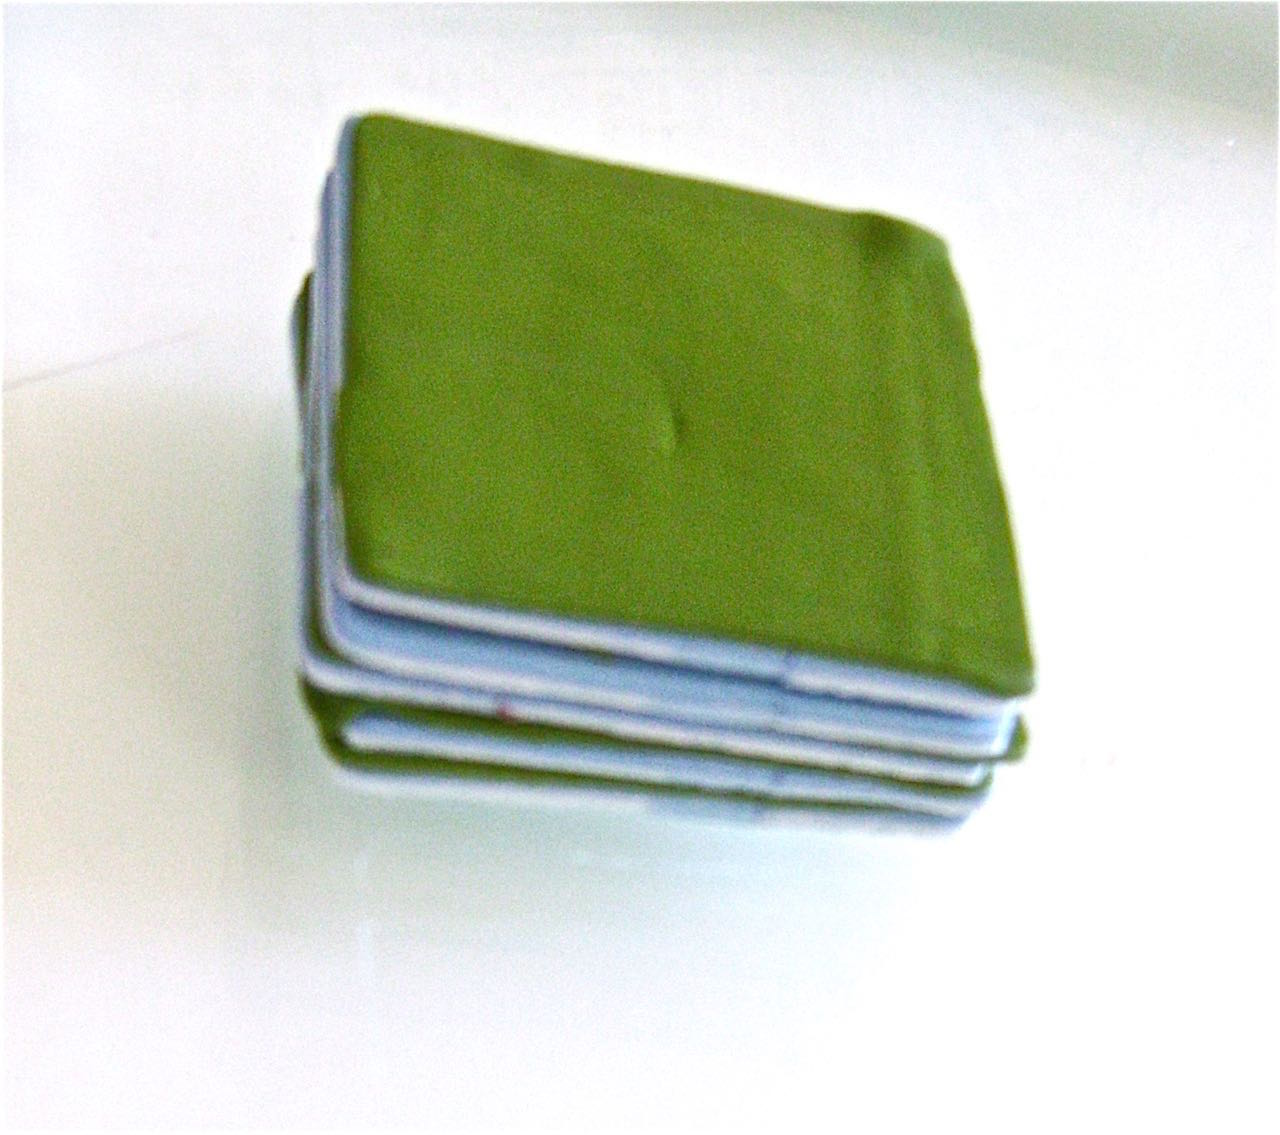 """step 1 - Condition about 2 oz. of each clay color. Use an acrylic roller or put it through a pasta machine to create layers that are the same thickness, about 1/16"""" or less. Use a cutter to make sheets the same dimension. Stack them with blue on the bottom, then green then plum. Alternate the colors until you have used up your sheets. This photo is not from this project but shows how to stack the clay."""